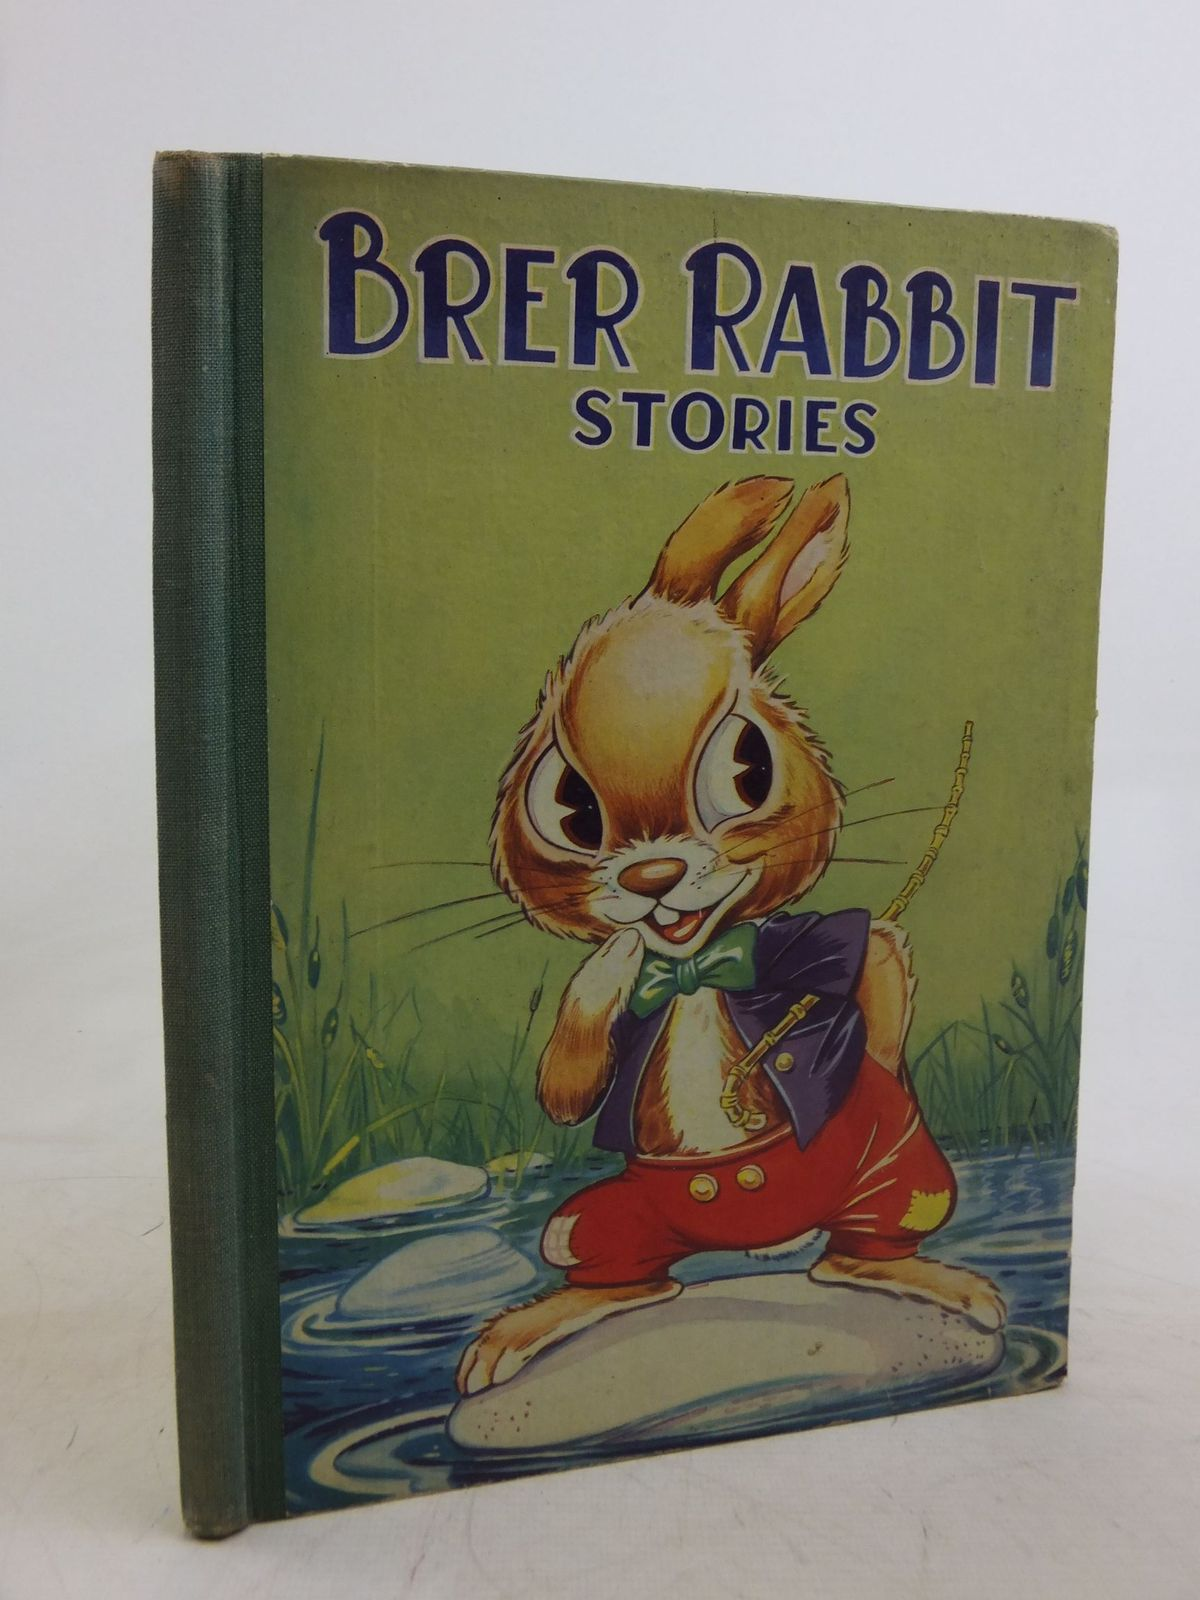 Photo of BRER RABBIT STORIES published by Birn Brothers Ltd. (STOCK CODE: 1712646)  for sale by Stella & Rose's Books